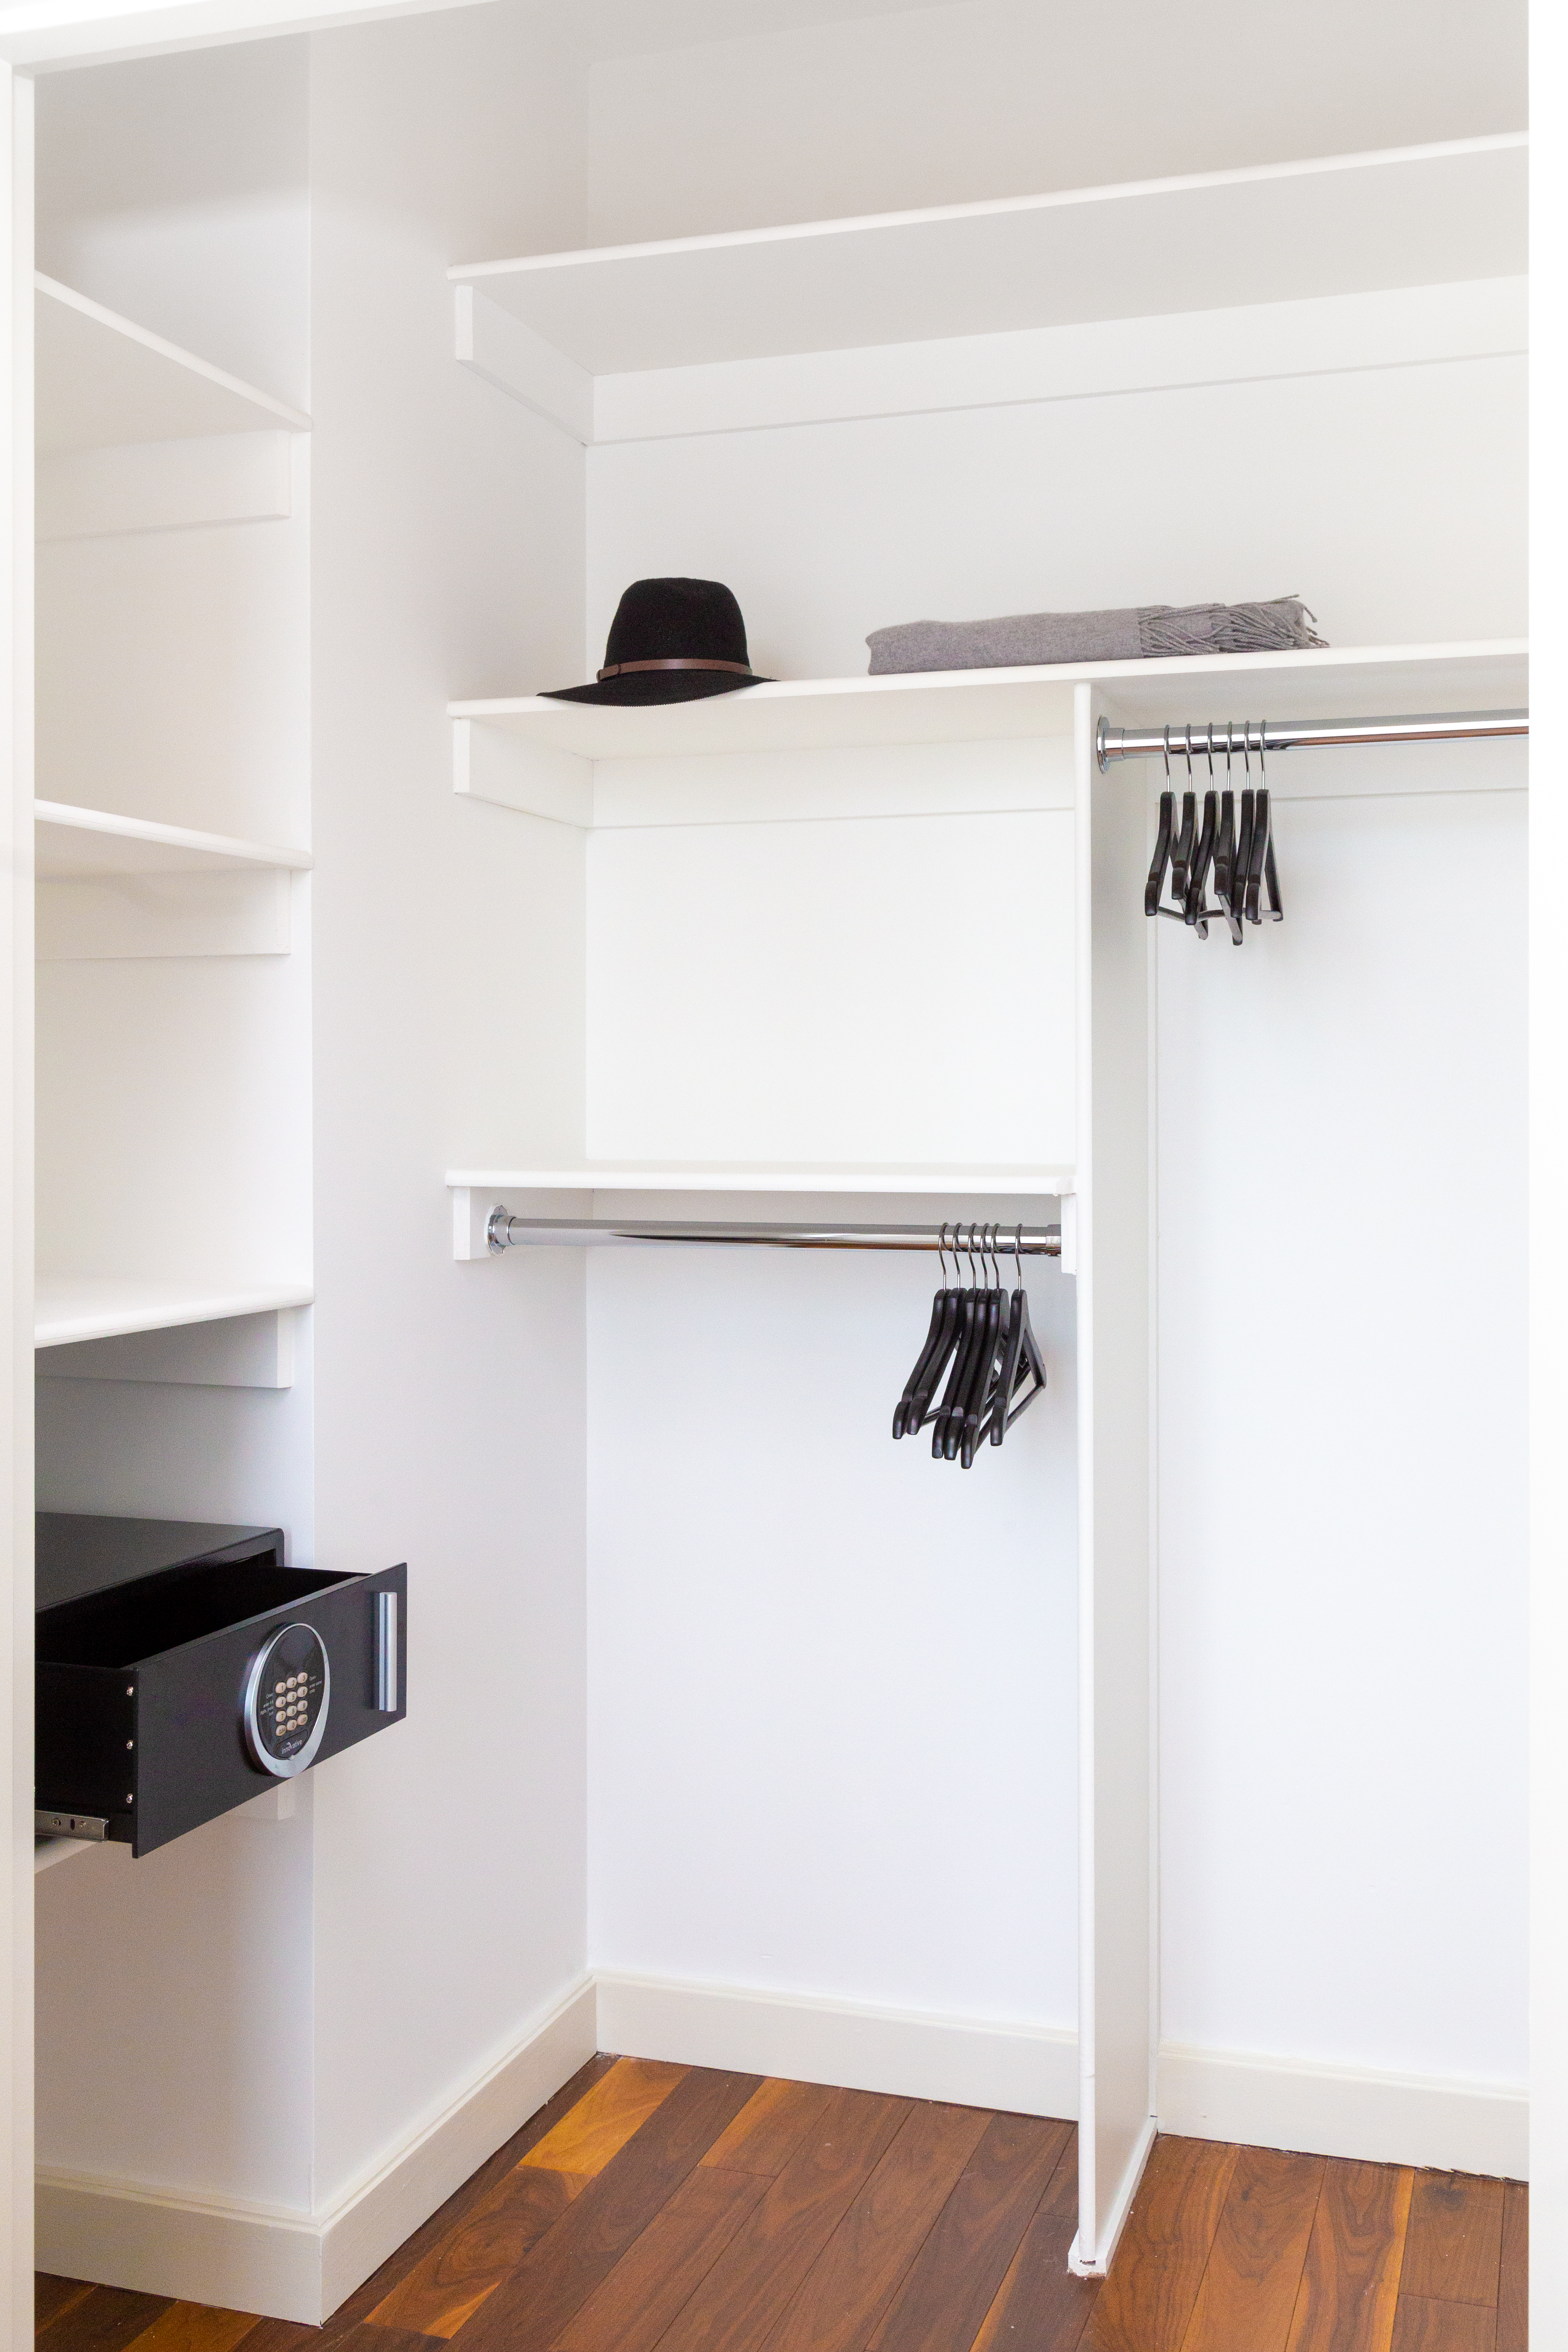 Pod Pad closets come with hotel-like safes for storing valuables.